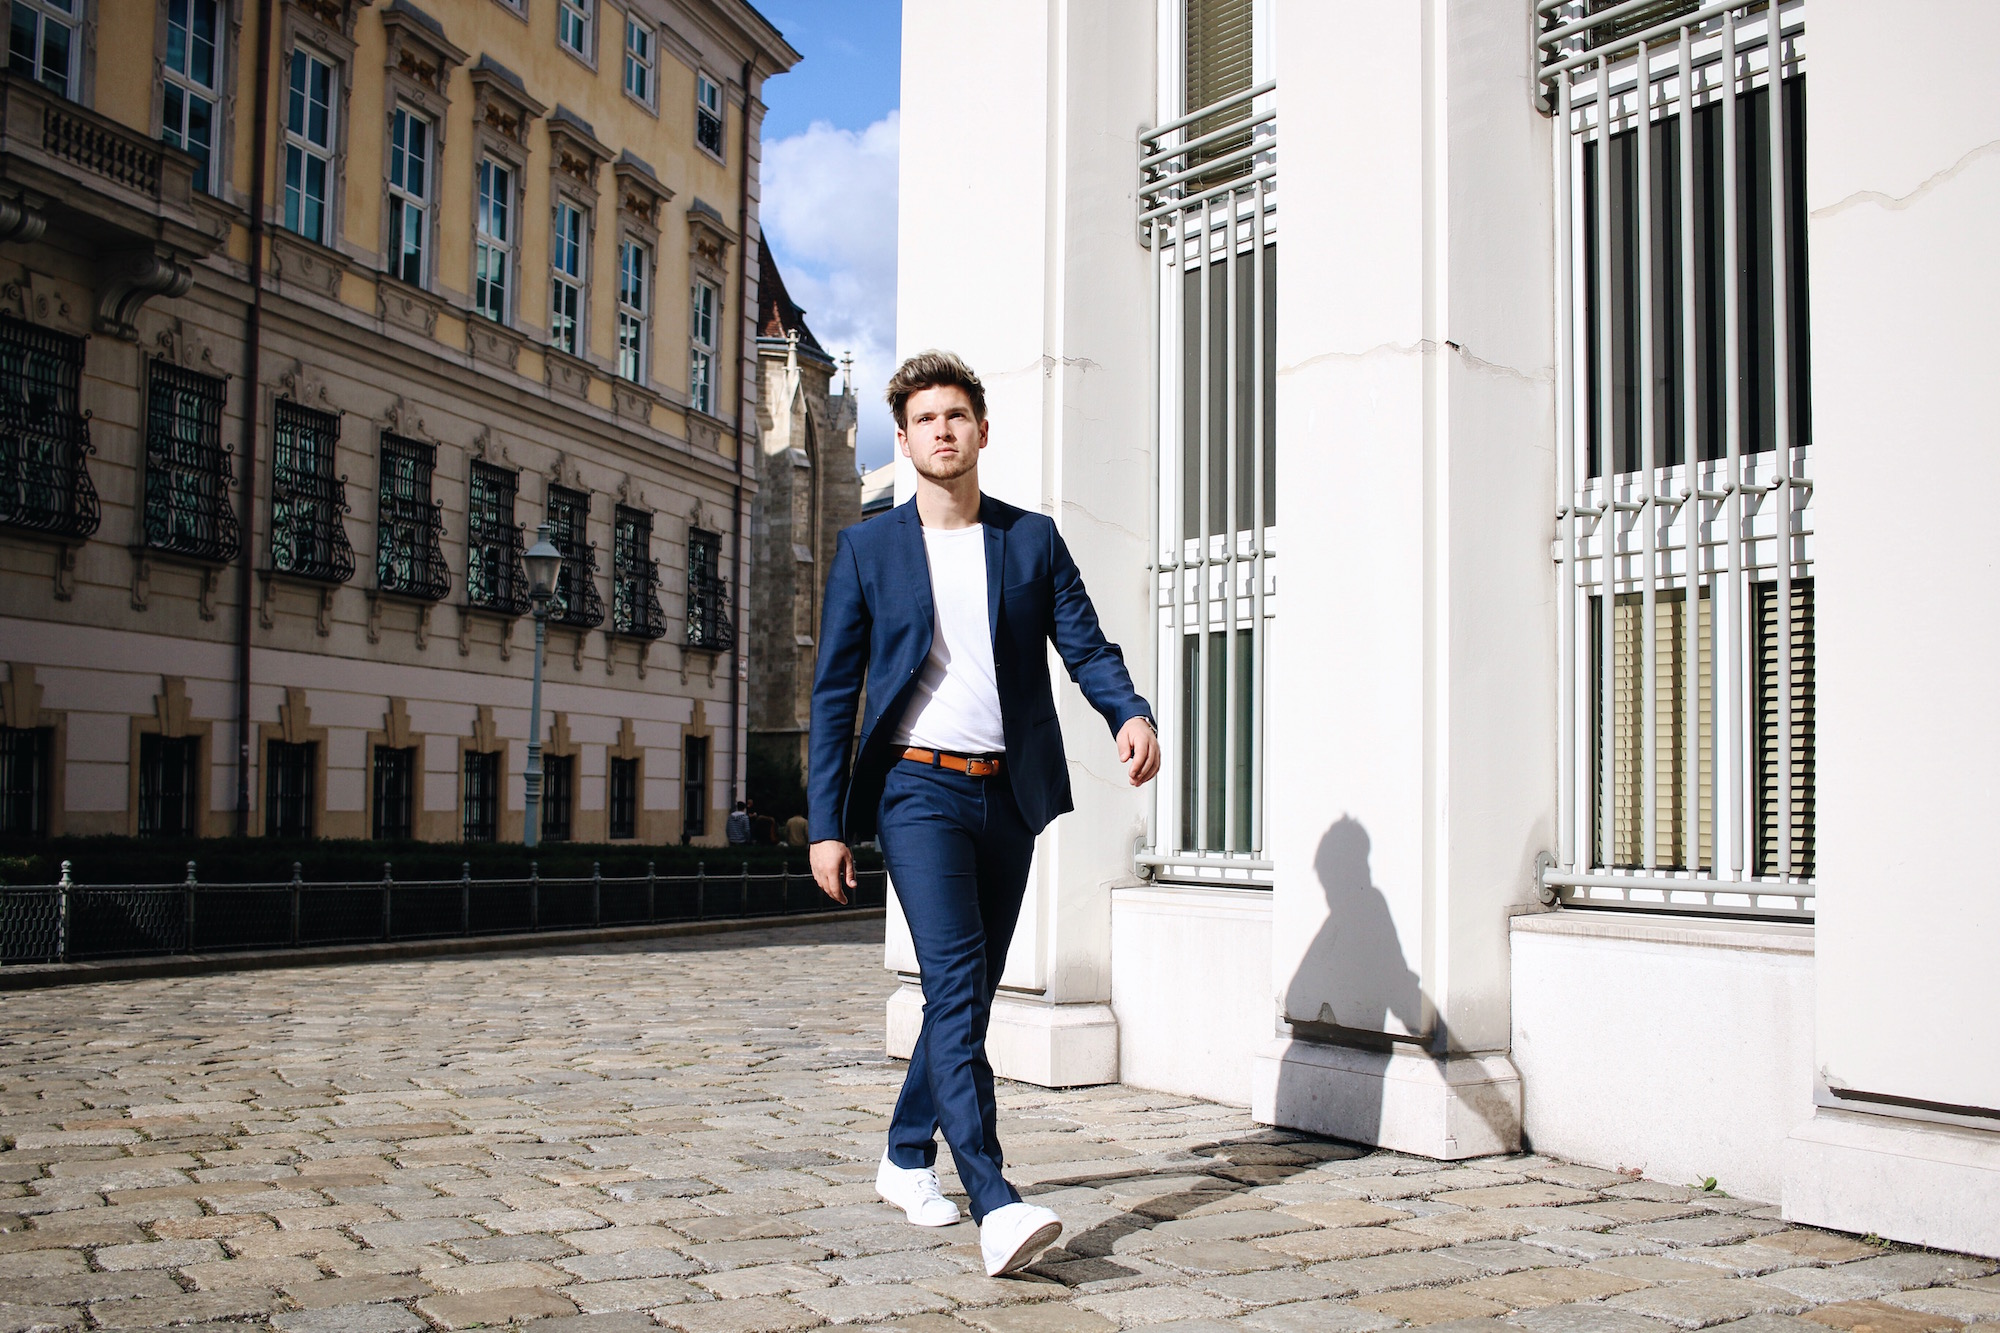 Tiger-Of-Sweden-Suit-Mix-Match_Three-ways-to-wear-a-suit_Meanwhile-in-Awesometown_Austrian-Mens-Fashion-and-Lifestyle-Blogger9